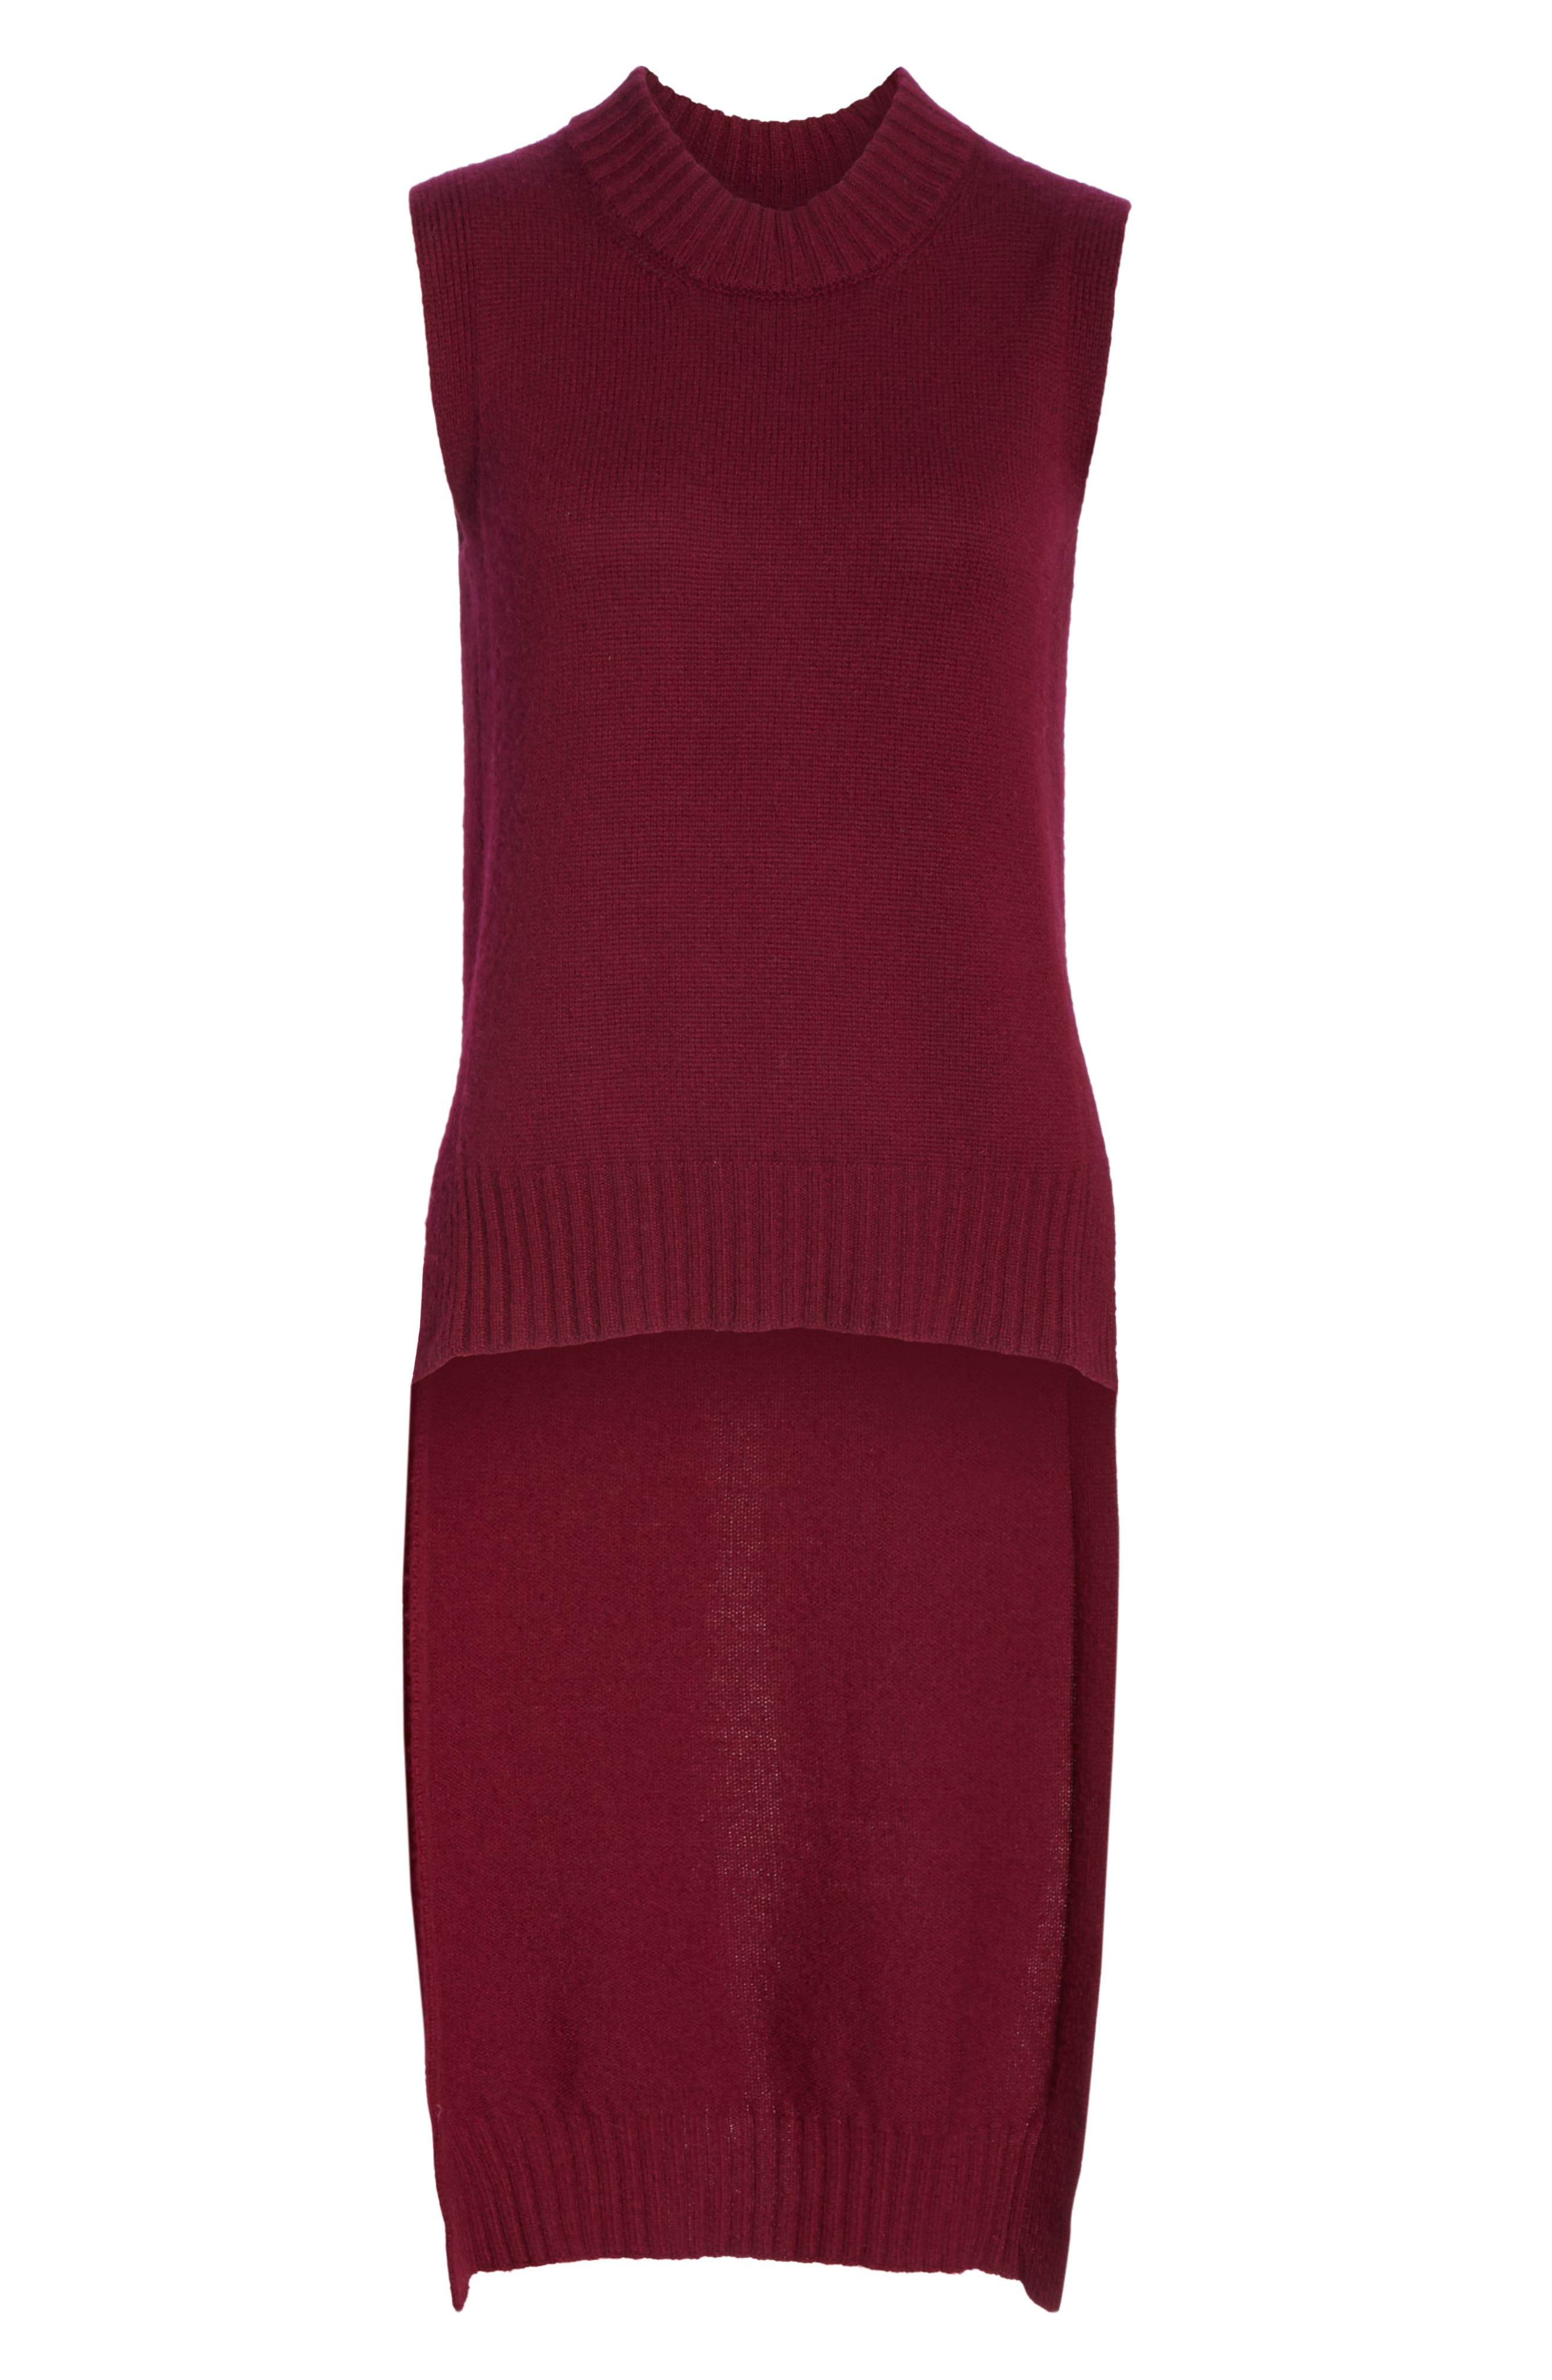 High/Low Wool & Cashmere Sweater,                             Alternate thumbnail 6, color,                             MAROON